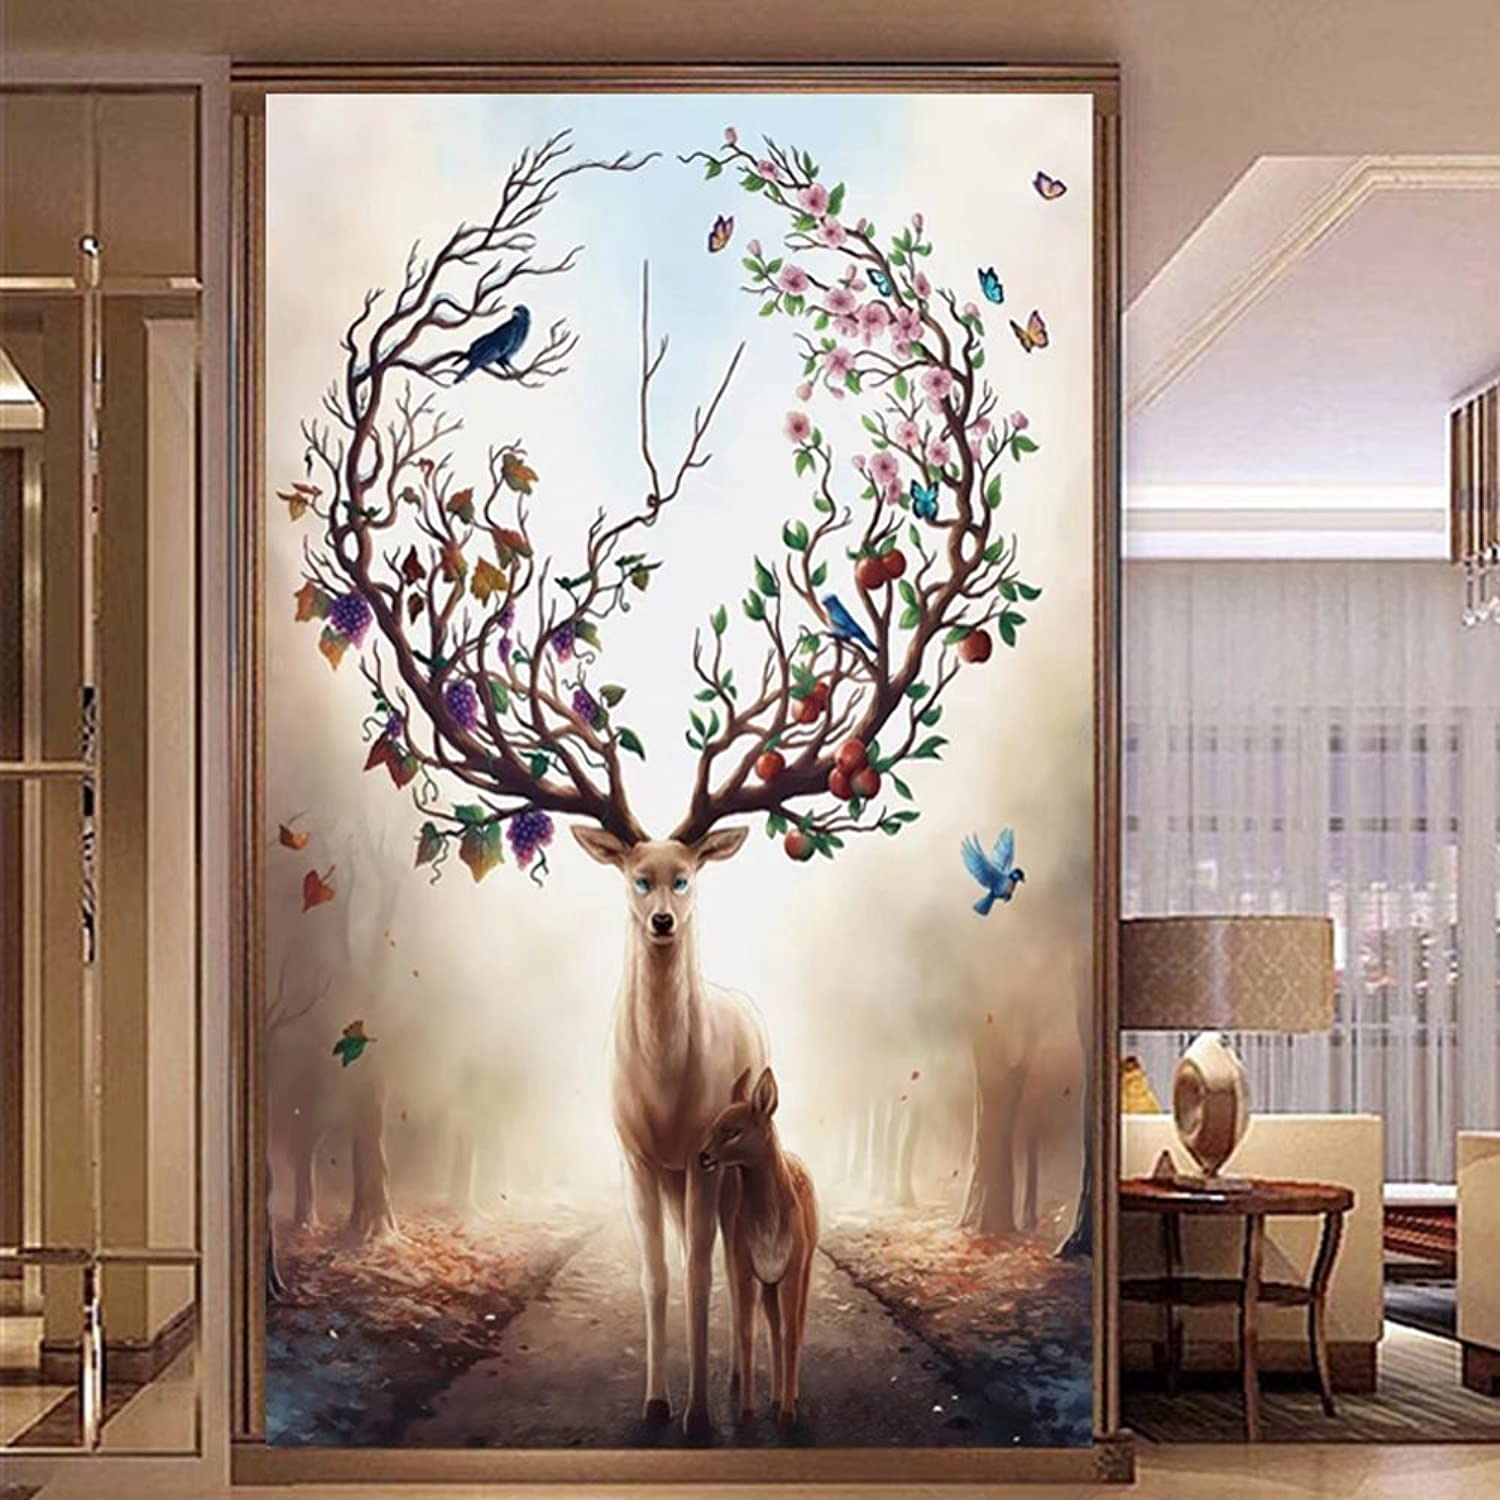 DIY 5D two elk Diamond Painting By Numbers Kits Full Drill Diamond Mosaic Embroidery Rhinestone Crystal Cross Stitch Kits Home Decor, Without Frame